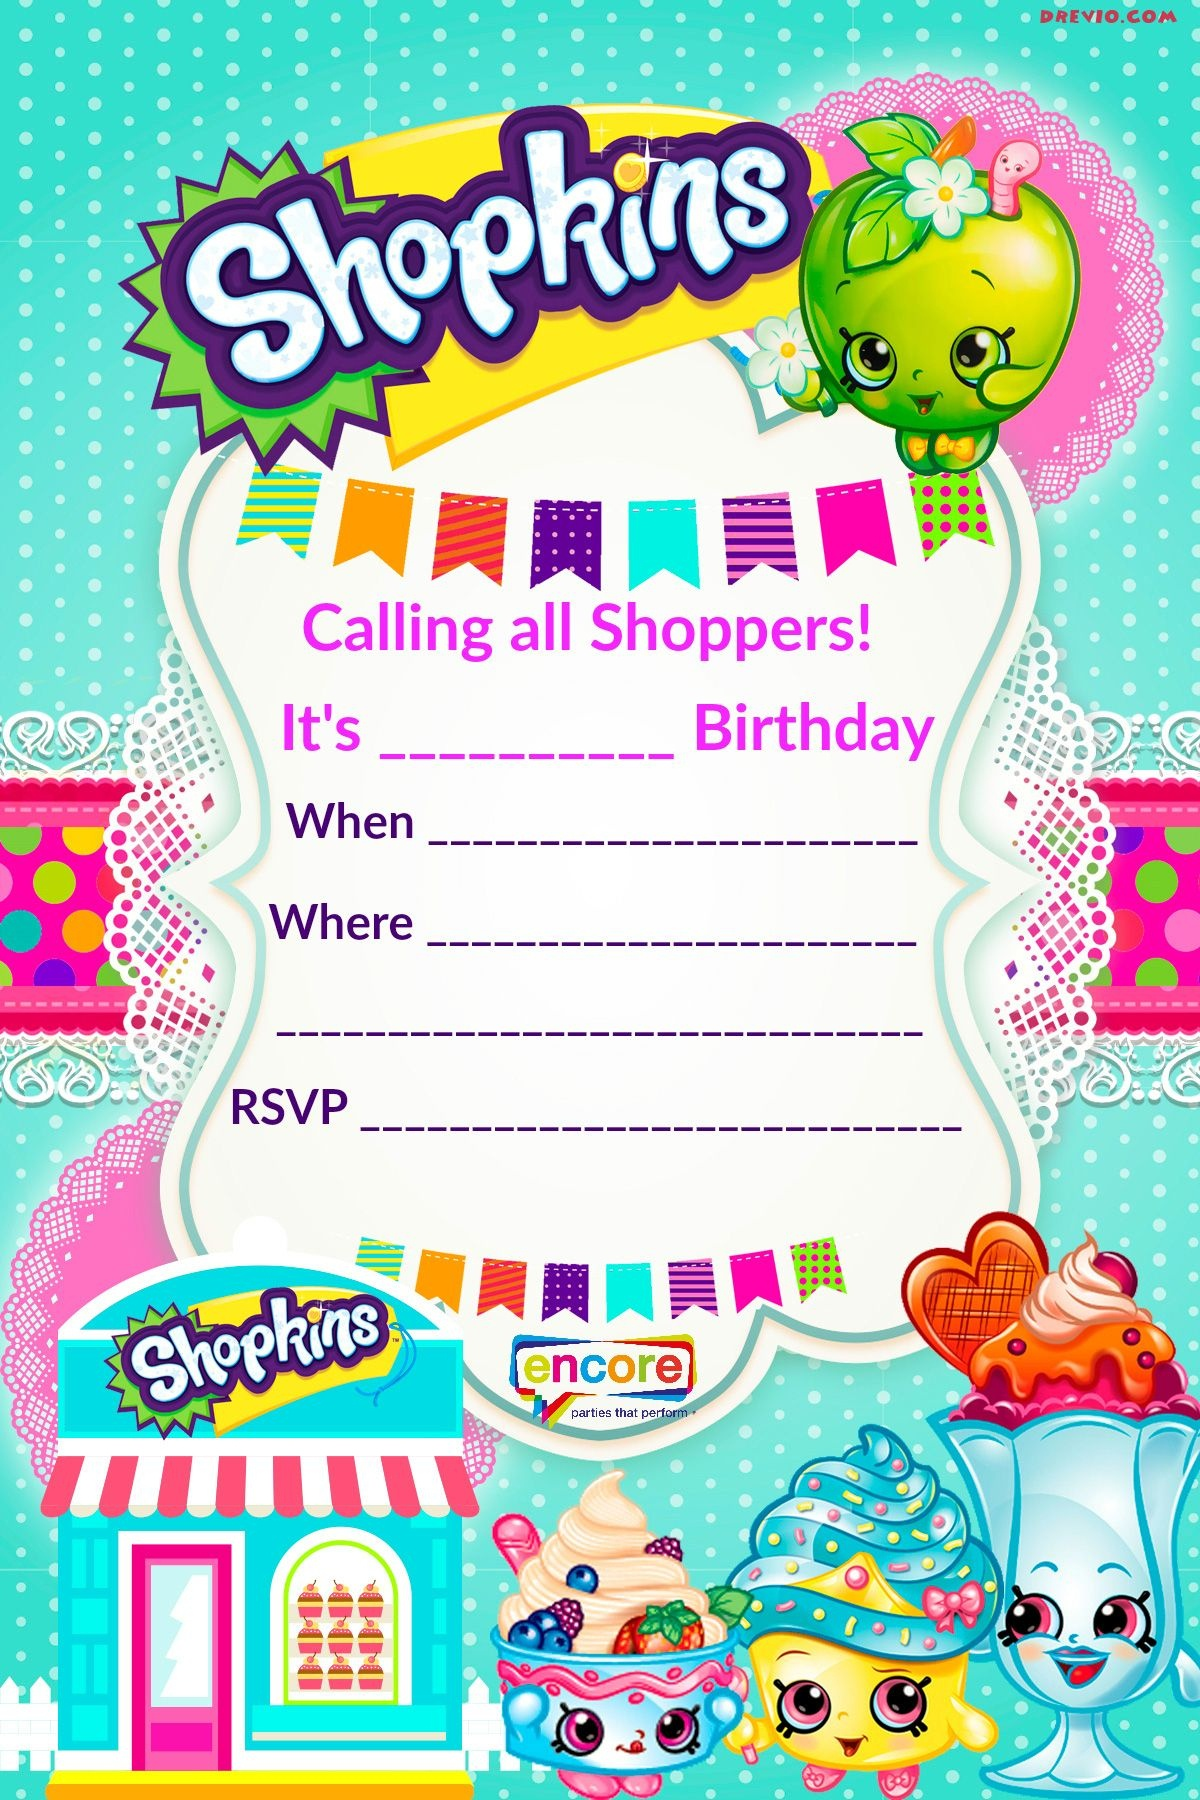 Updated - Free Printable Shopkins Birthday Invitation Template - Shopkins Banner Printable Free